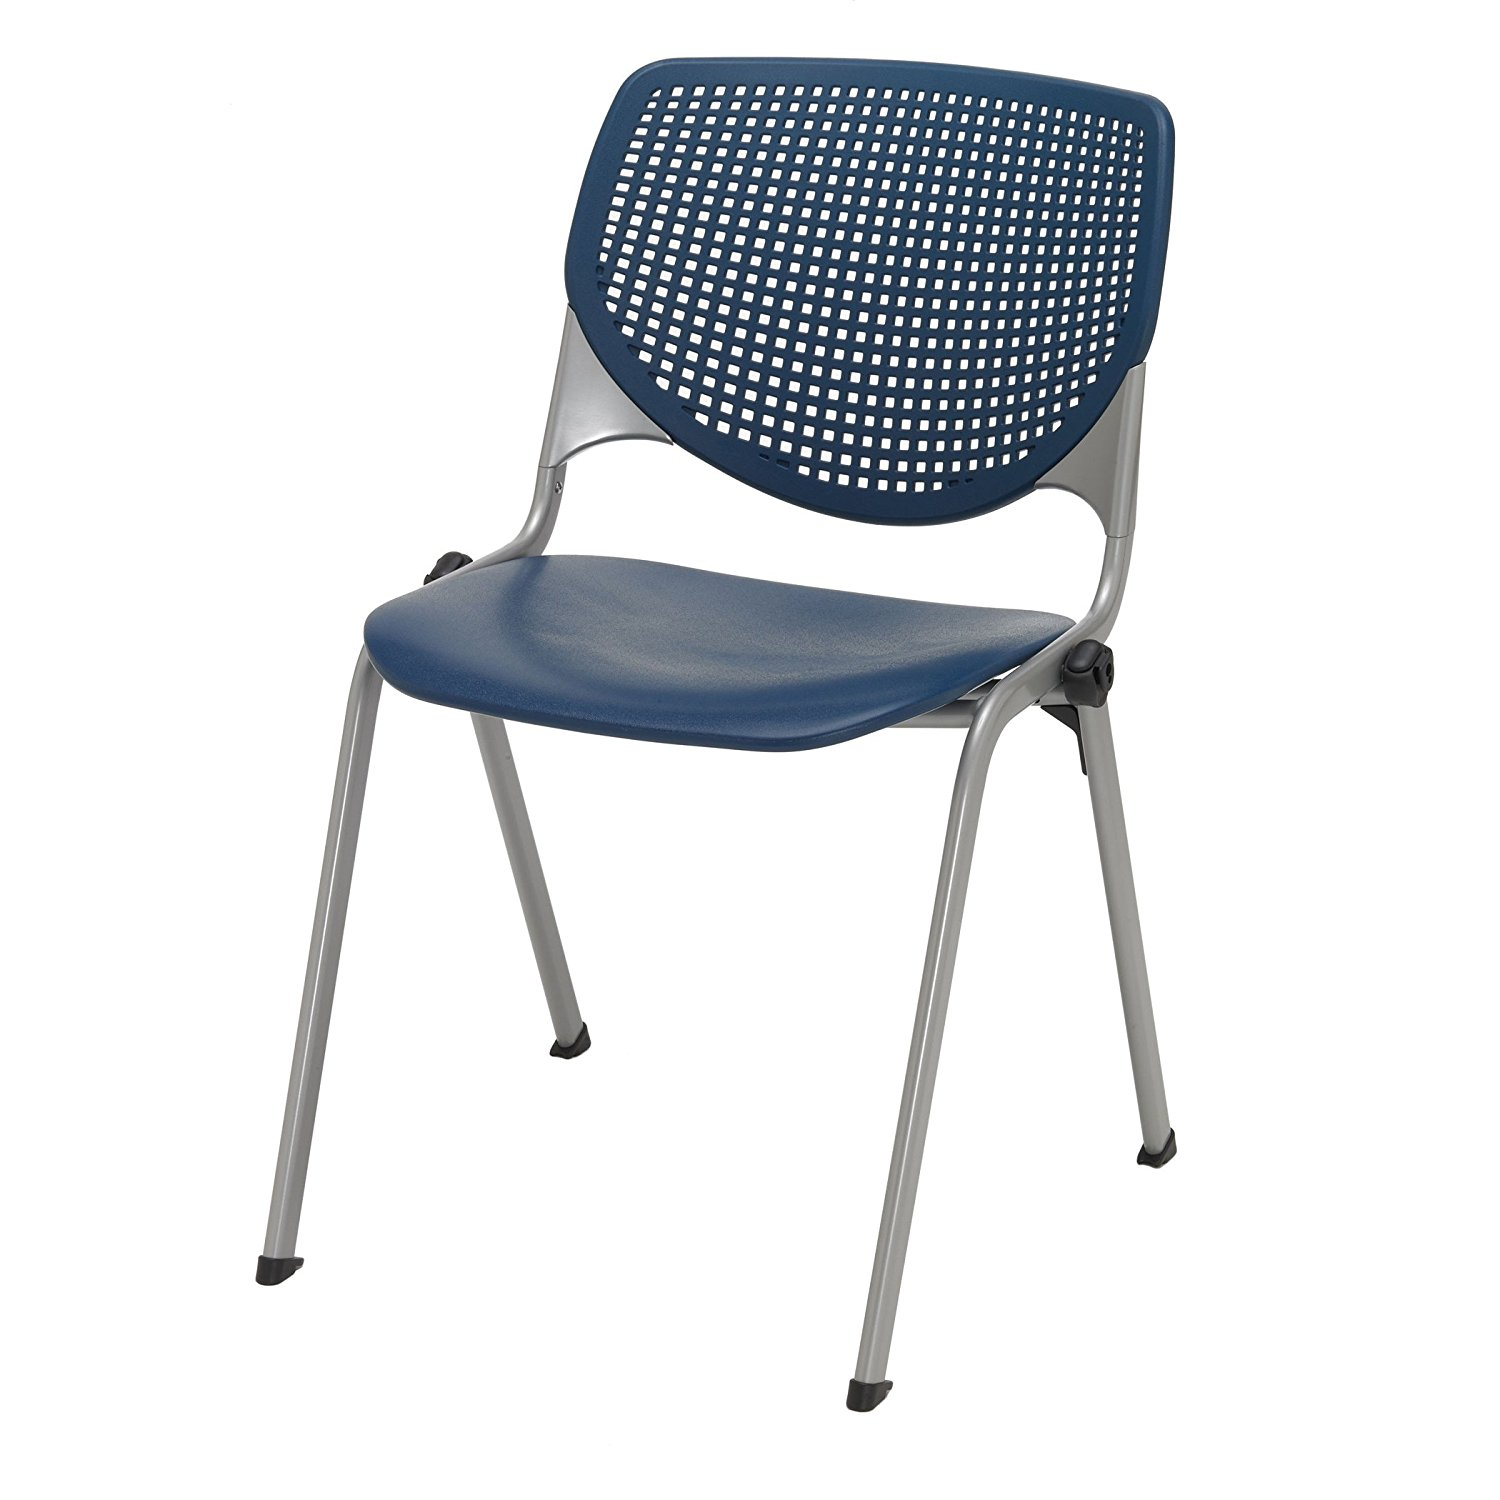 KFI Seating KOOL Series Polypropylene Stack Chair with Perforated Back, Navy Finish